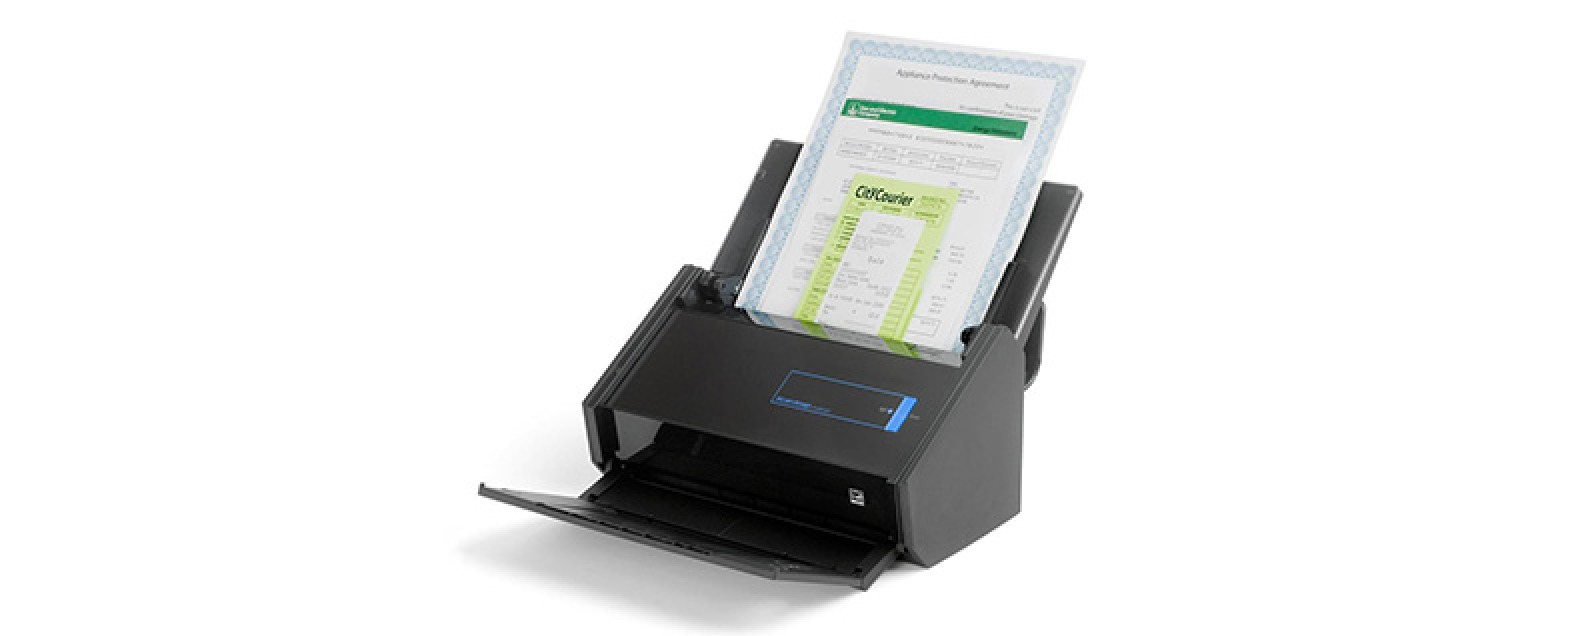 Review: Powerful Wireless Scanner Lets You Share Documents to Your iPhone